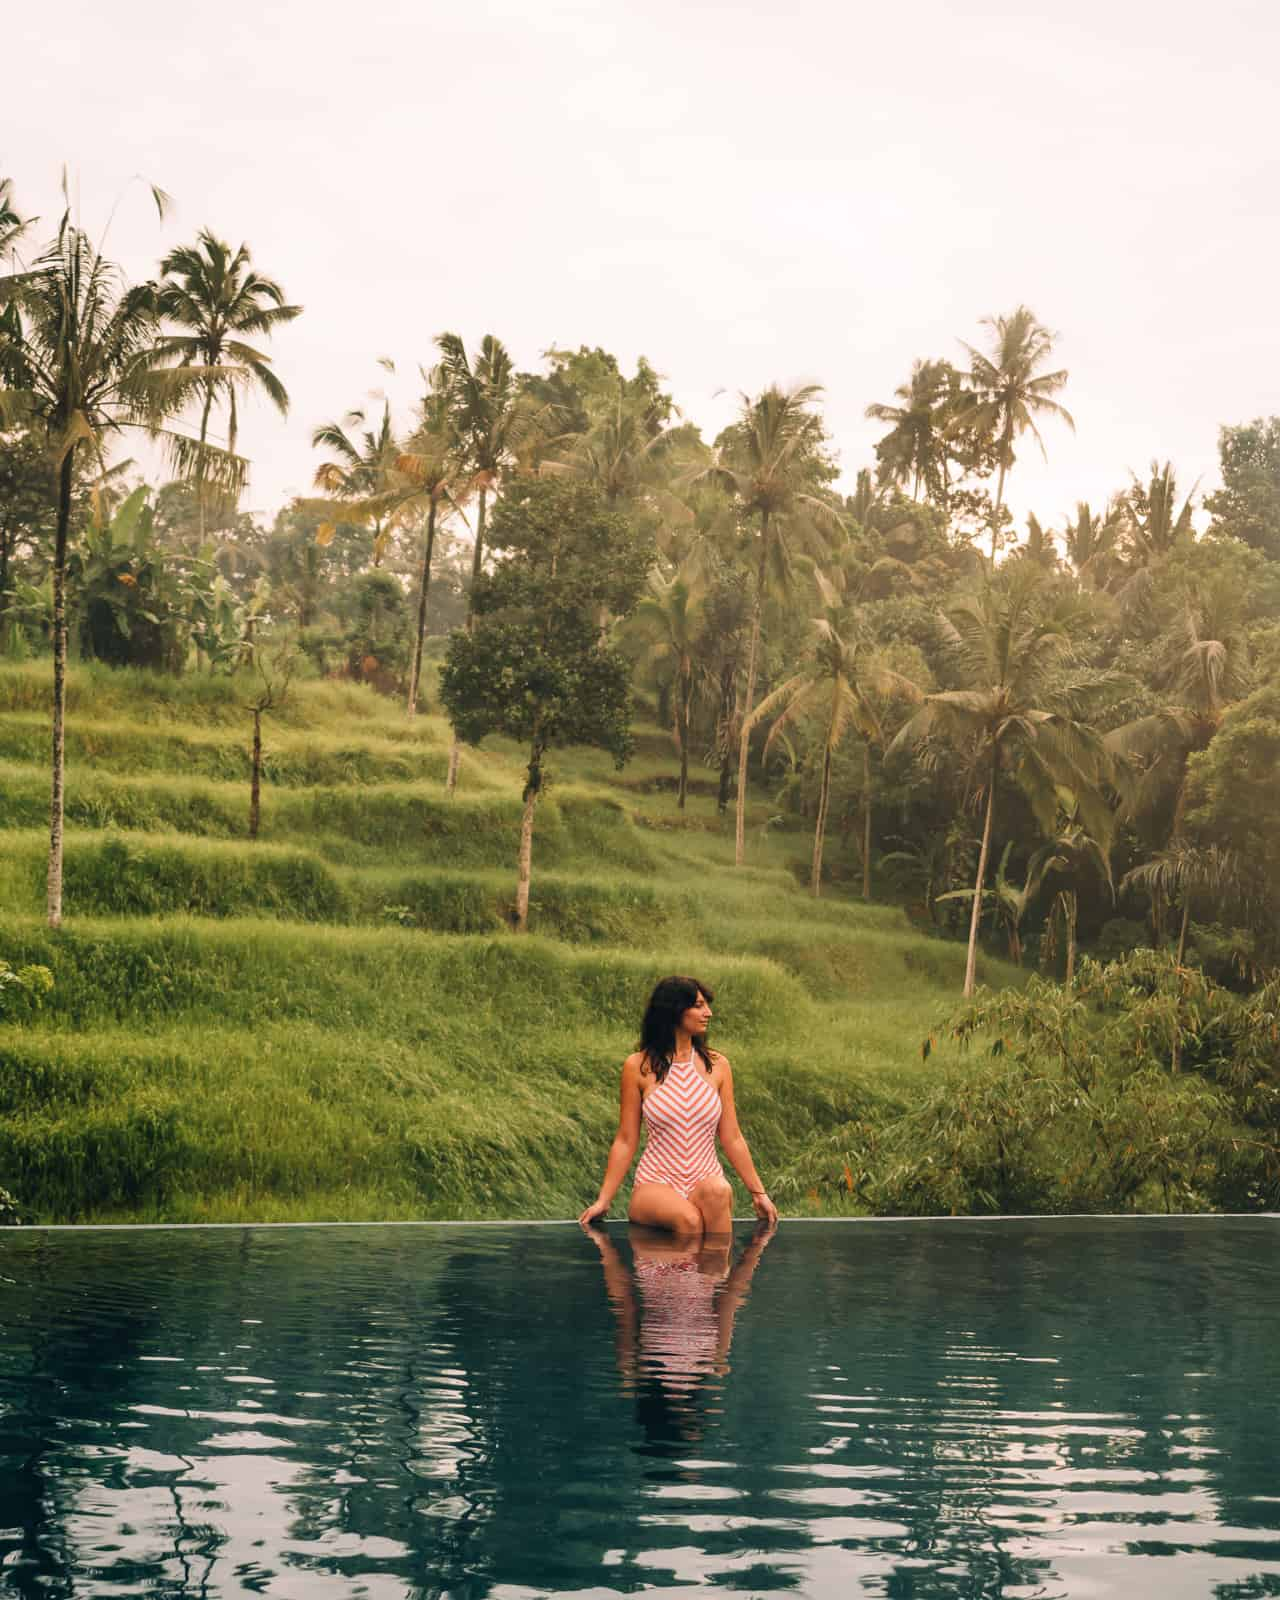 Alilia Ubud - Dschungel Wellnessoase mit Infinity Pool & Outdoorbad 12